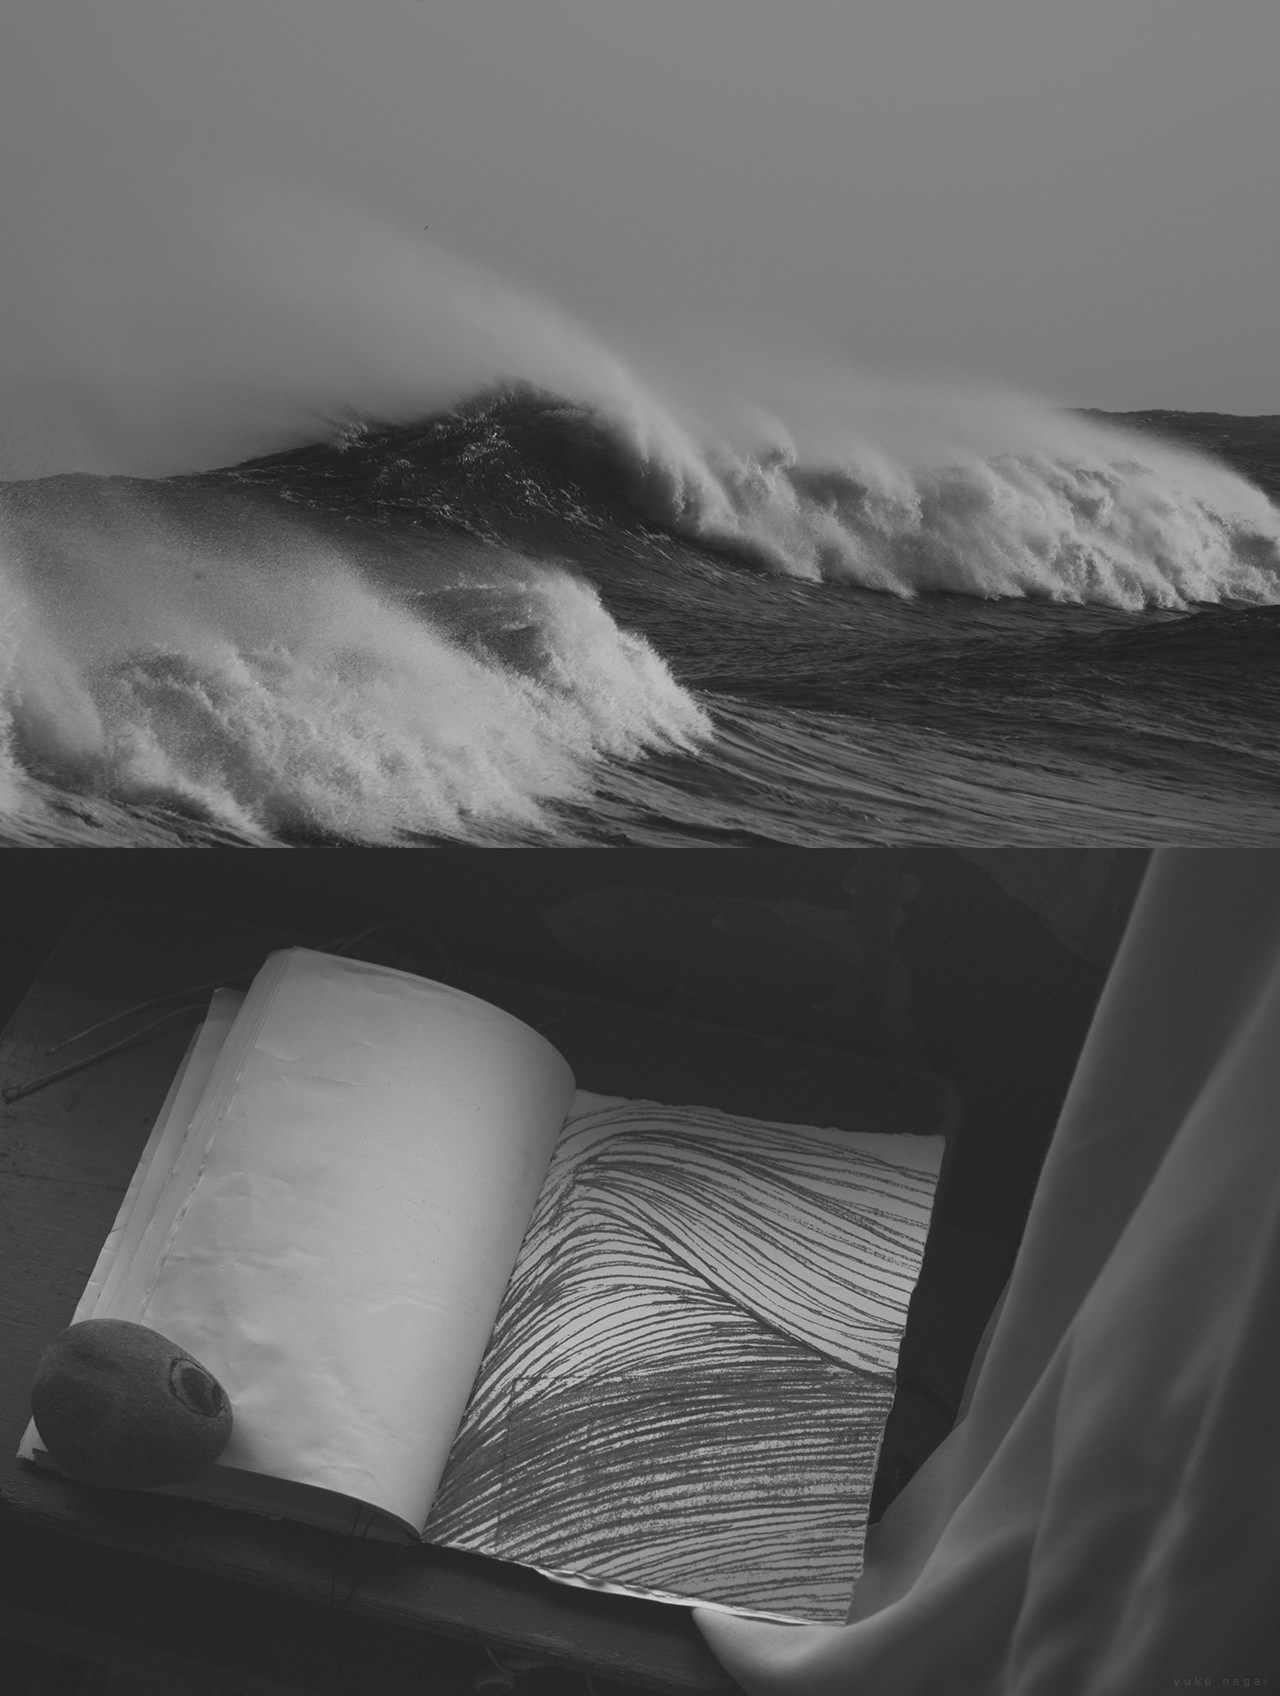 Ocean waves and a journal with a drawing.